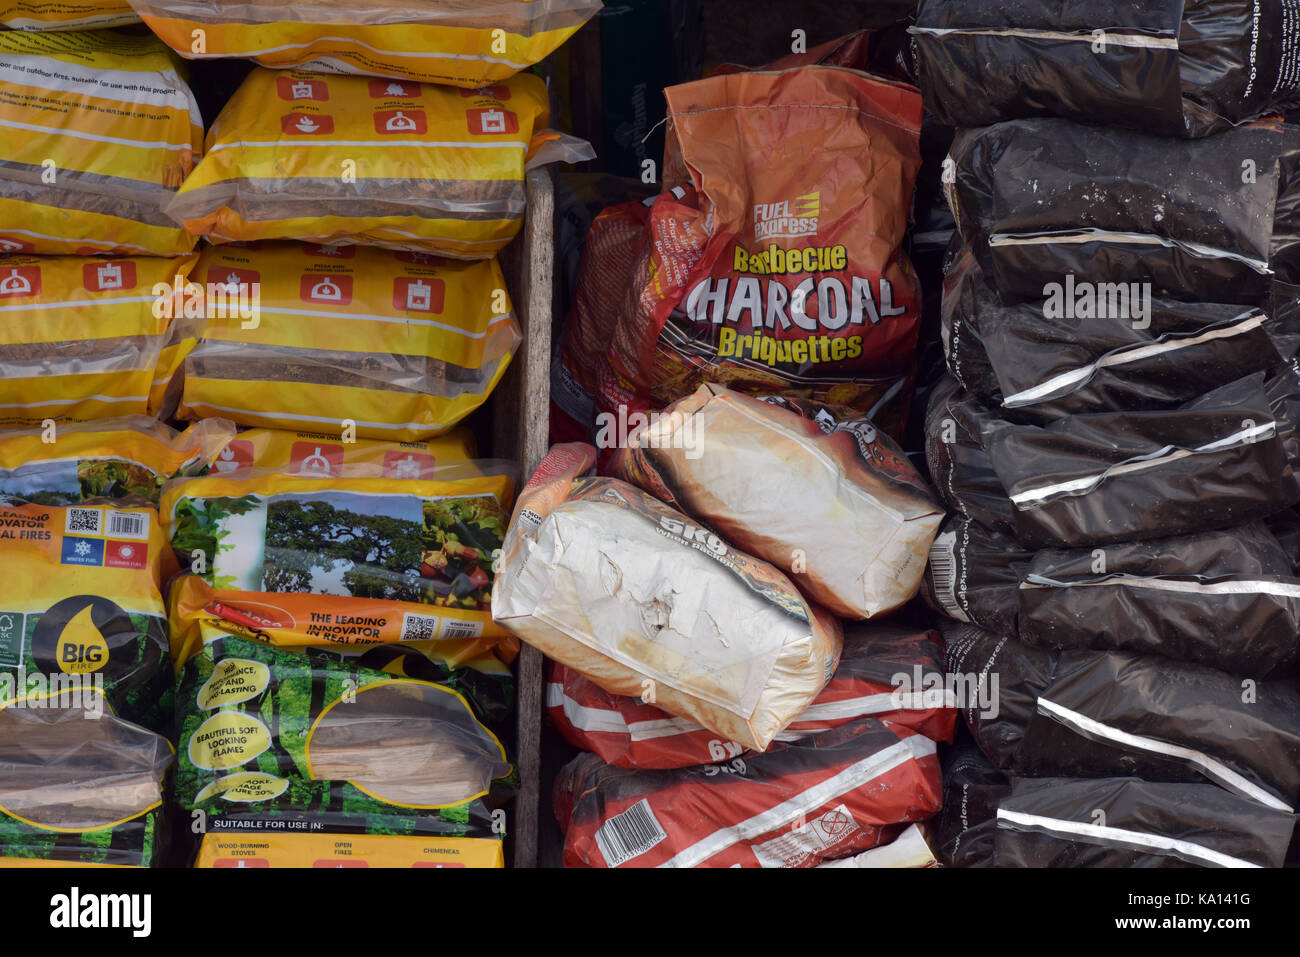 Bags of smokeless fuel and barbecue coals and briquettes in sacks stacked up ready for purchase at a shop or garden - Stock Image